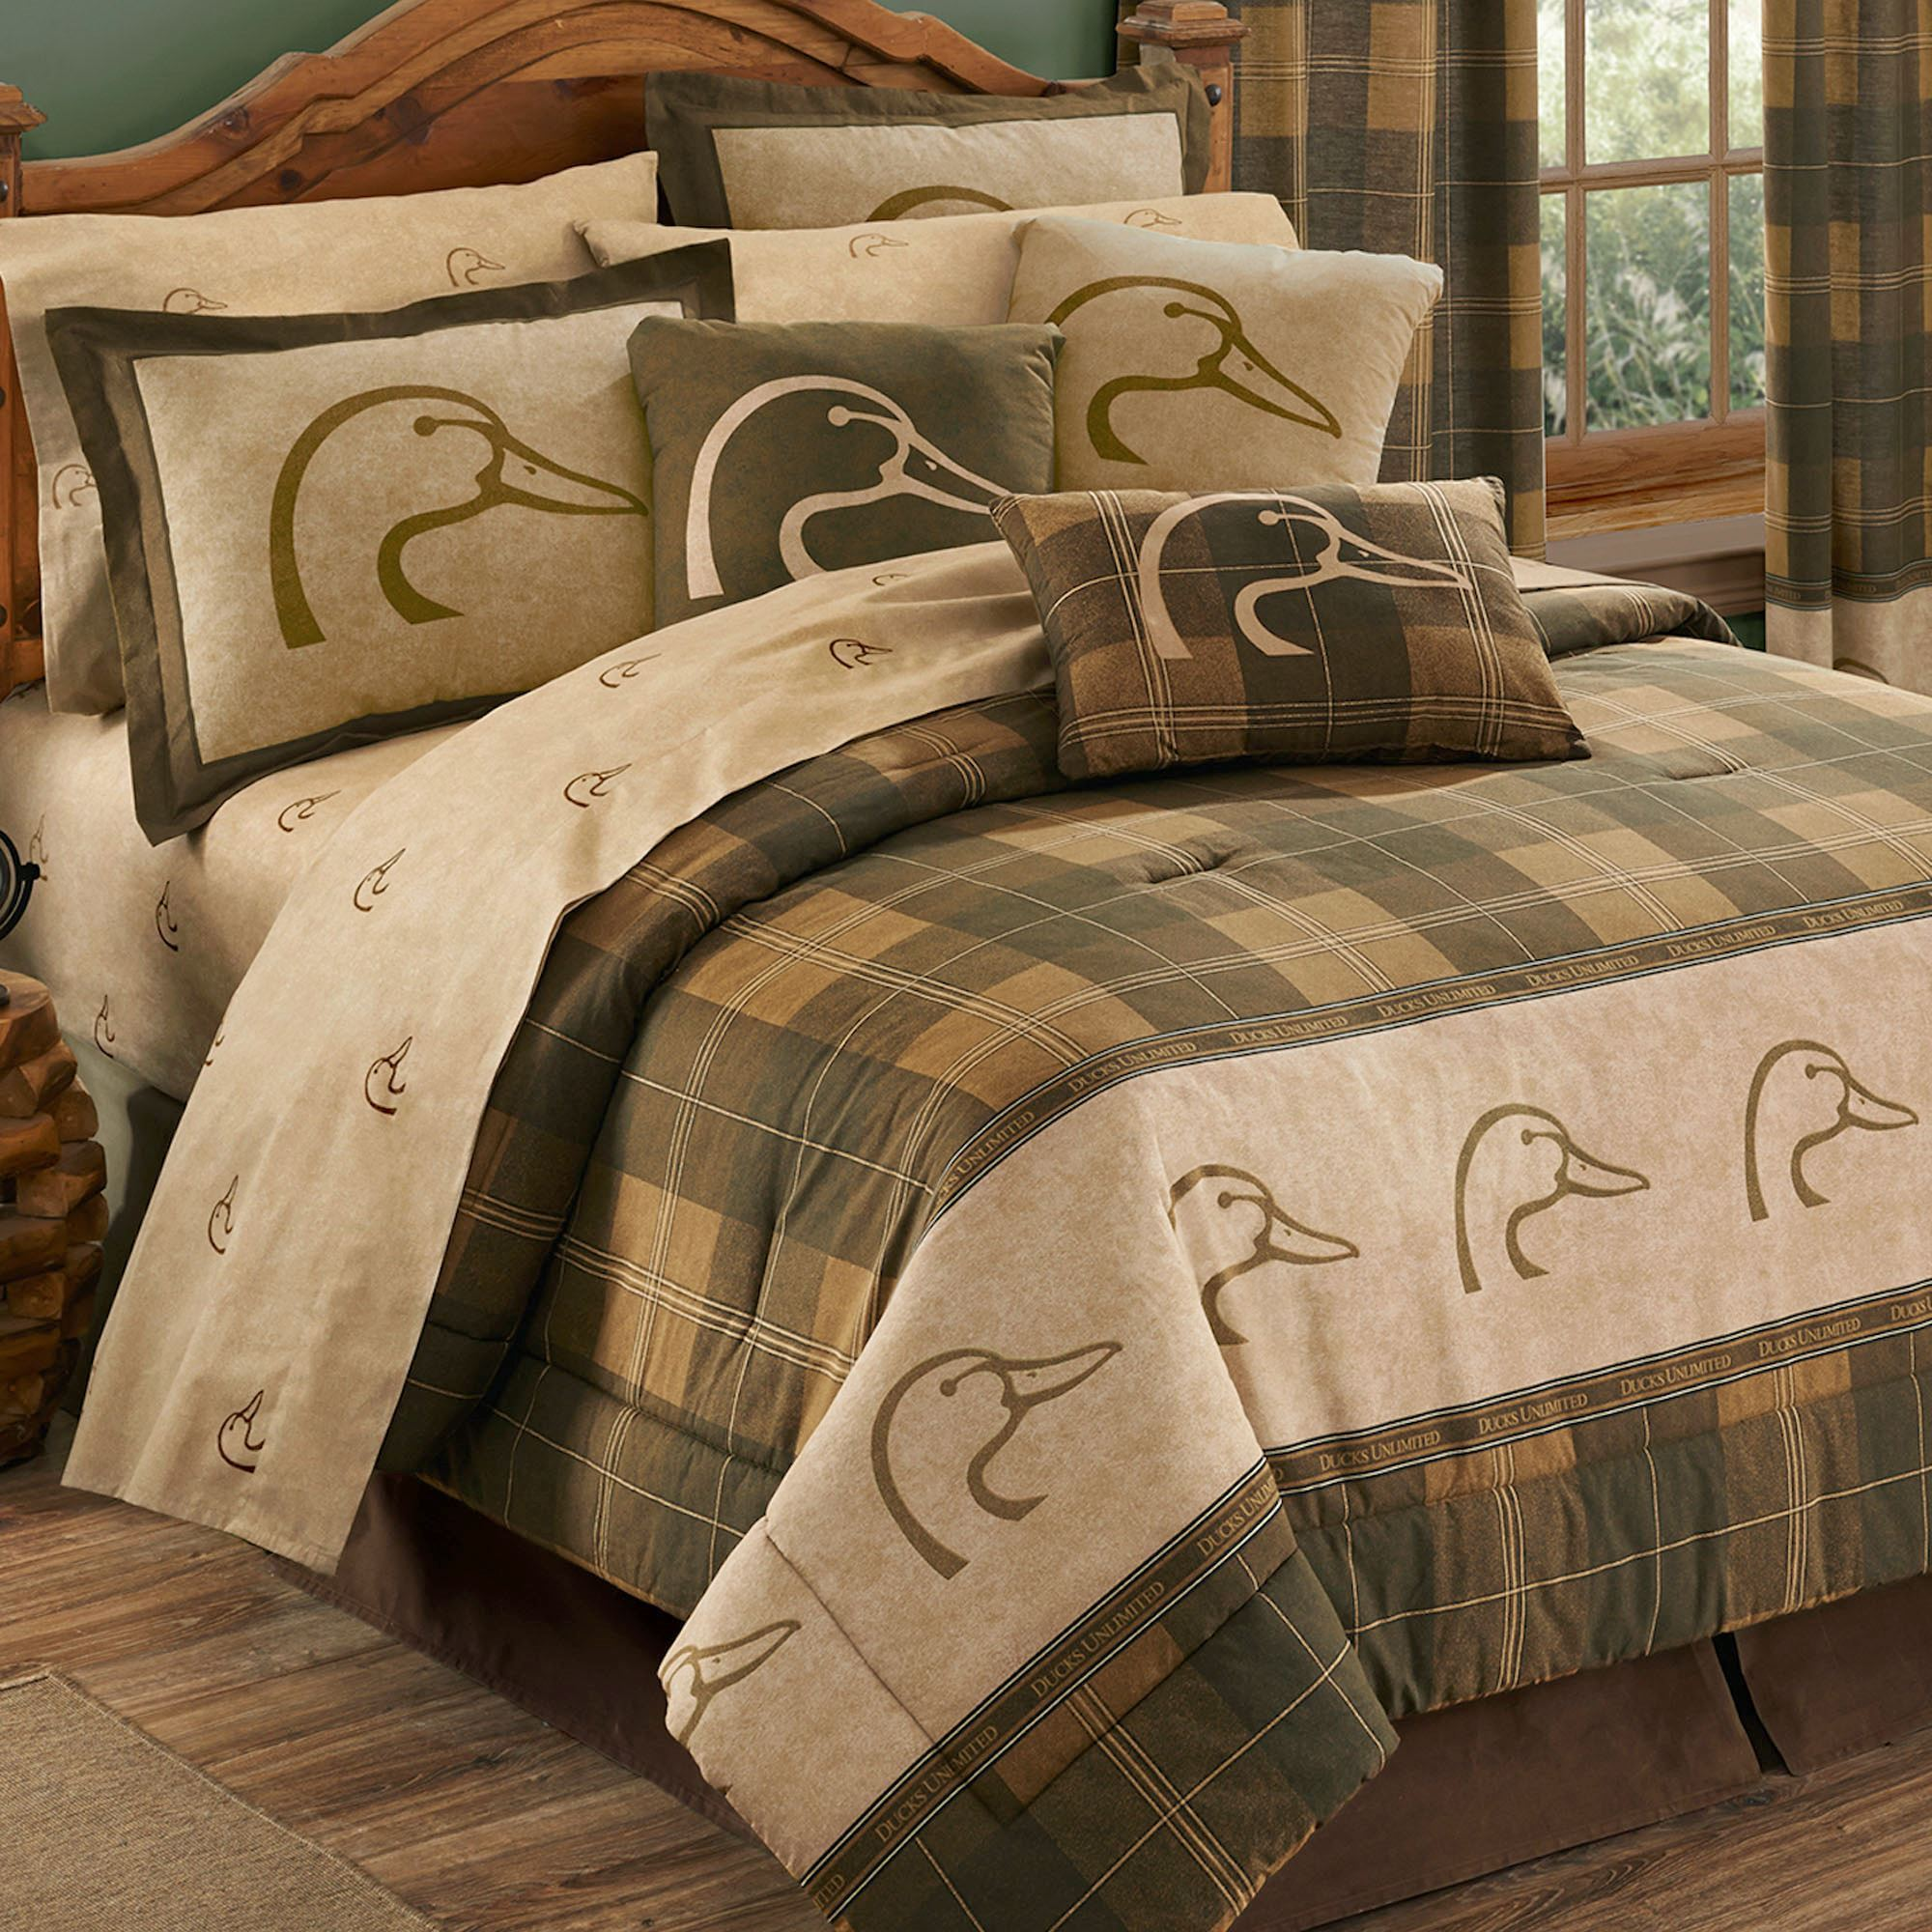 Ducks Unlimited Plaid Comforter Bedding